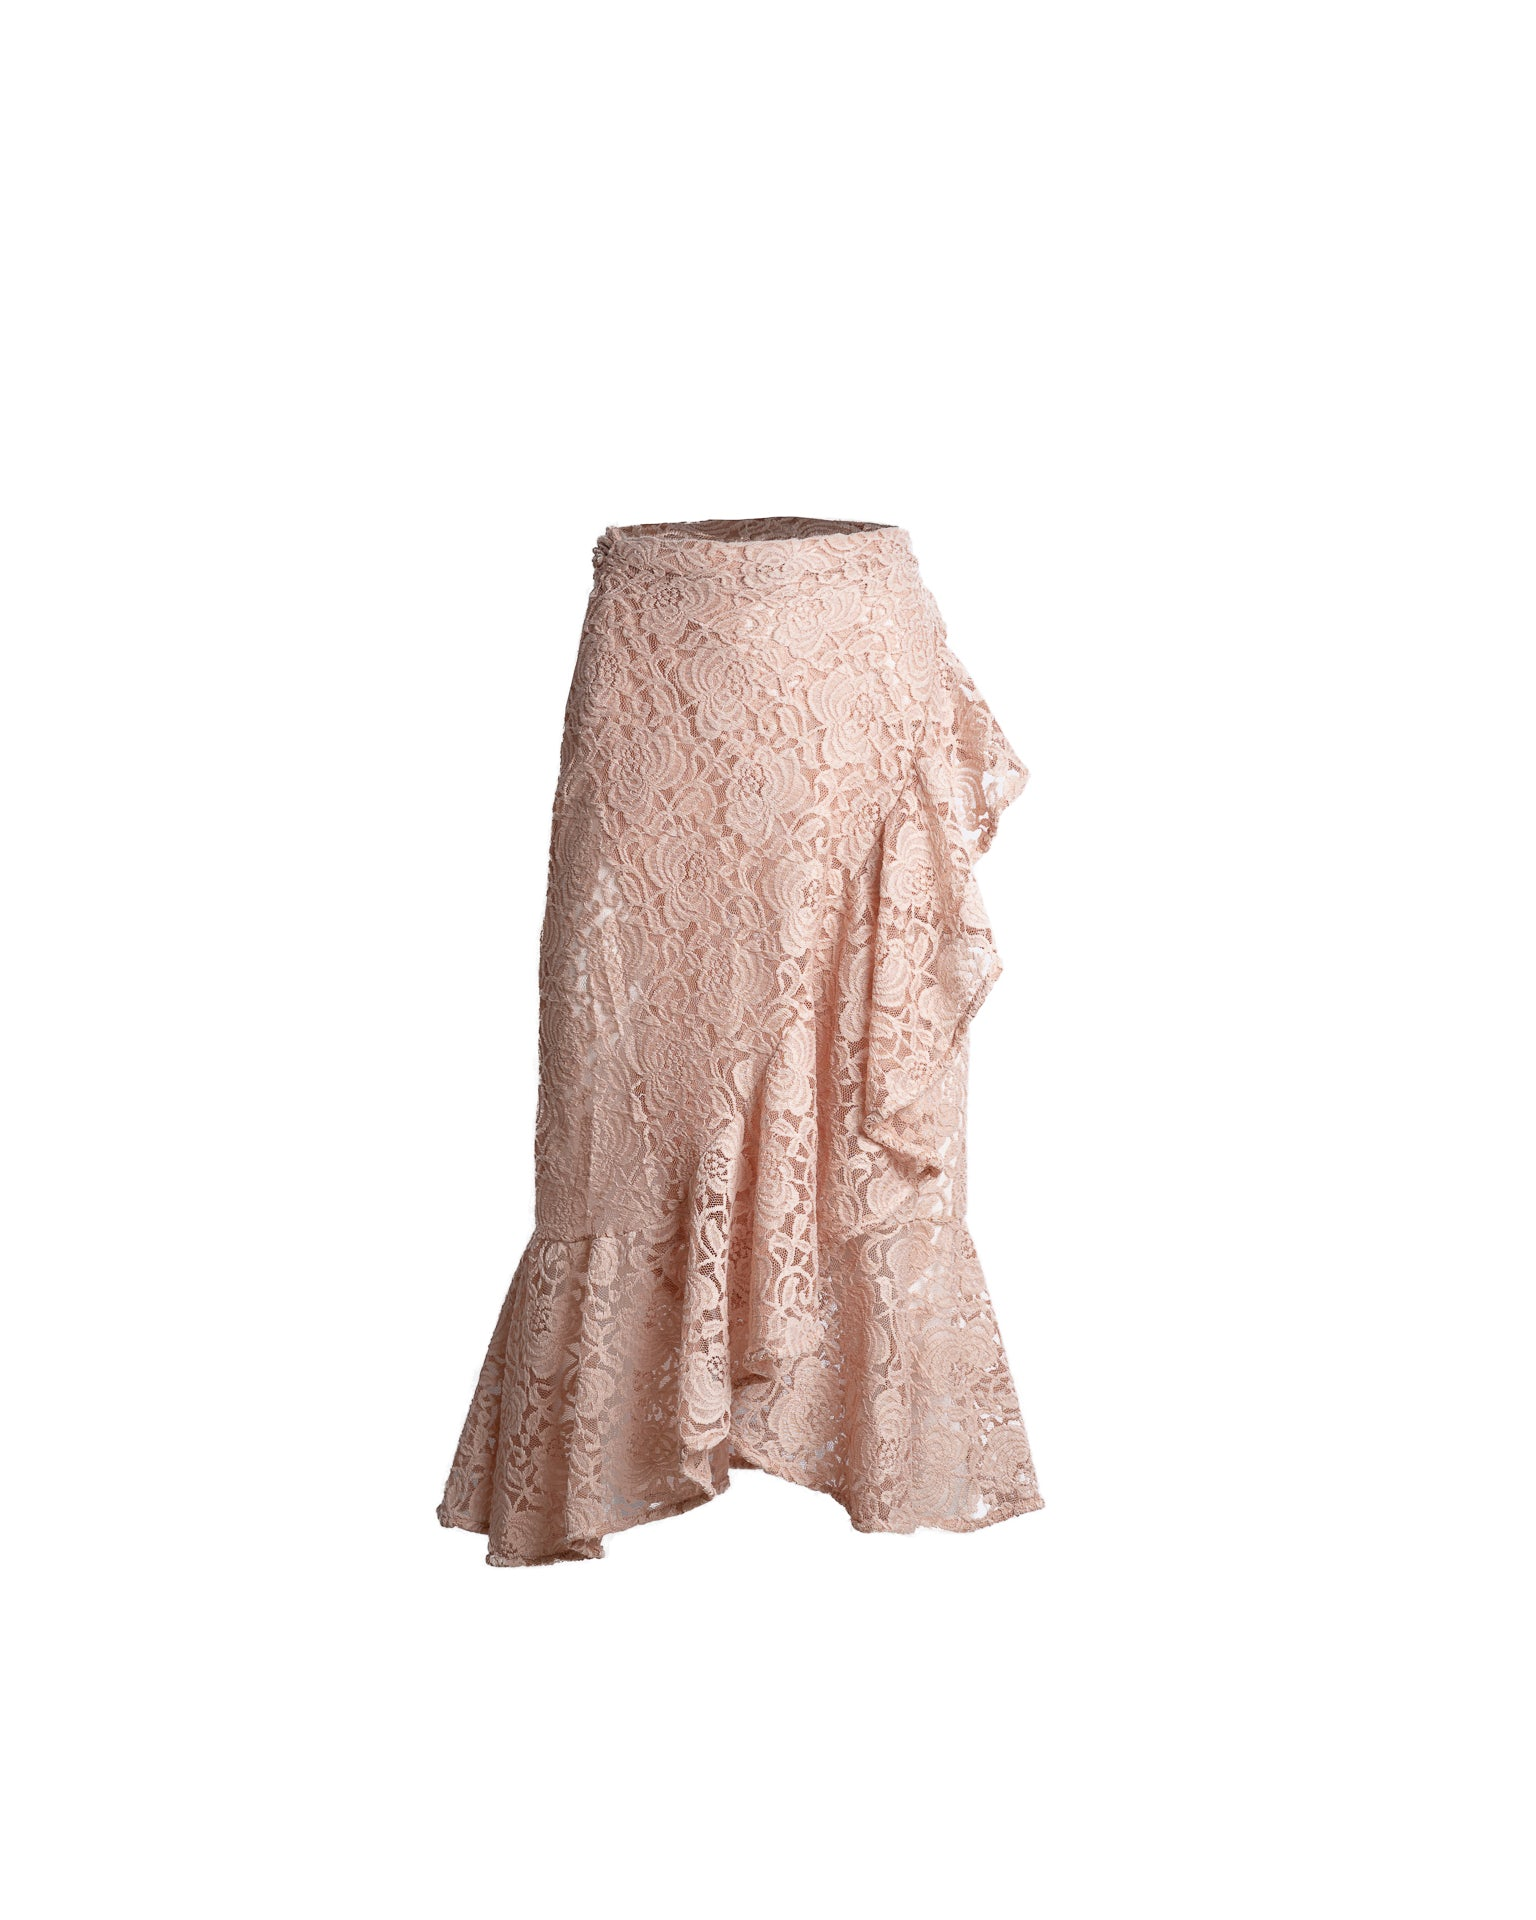 Antigua Skirt Lola Nude Lace